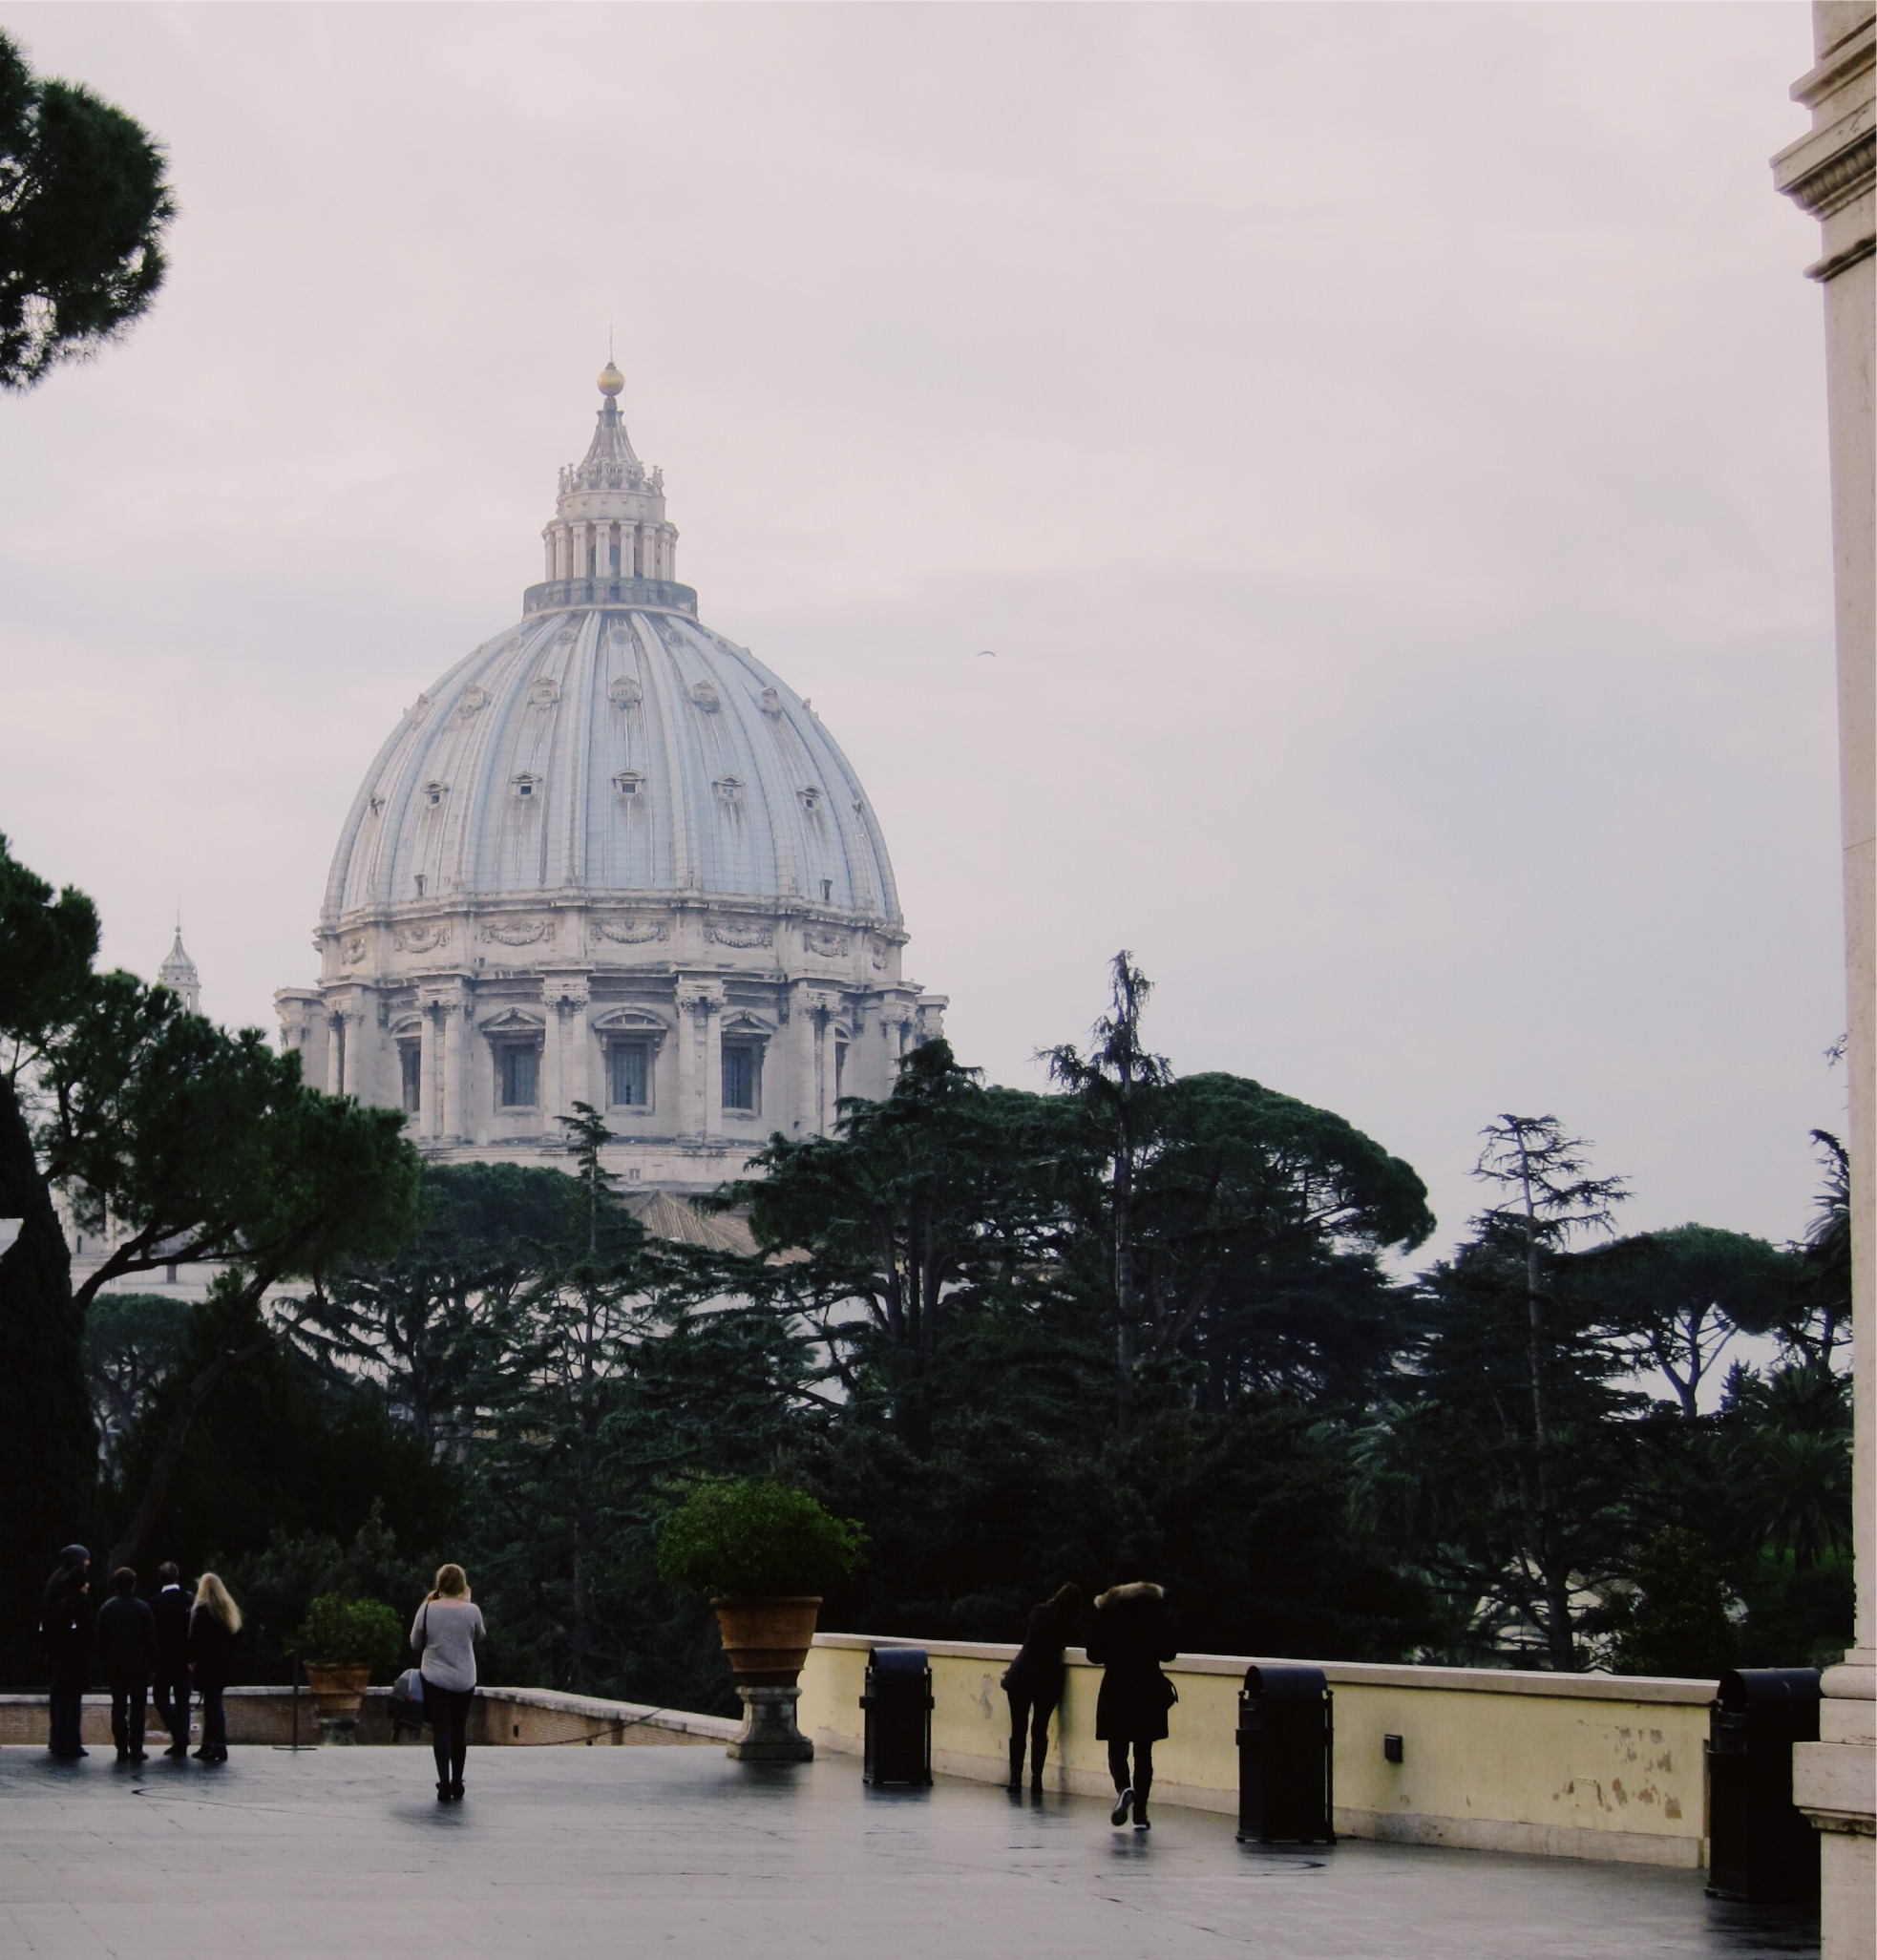 St. Peter's Basilica: View of the Dome